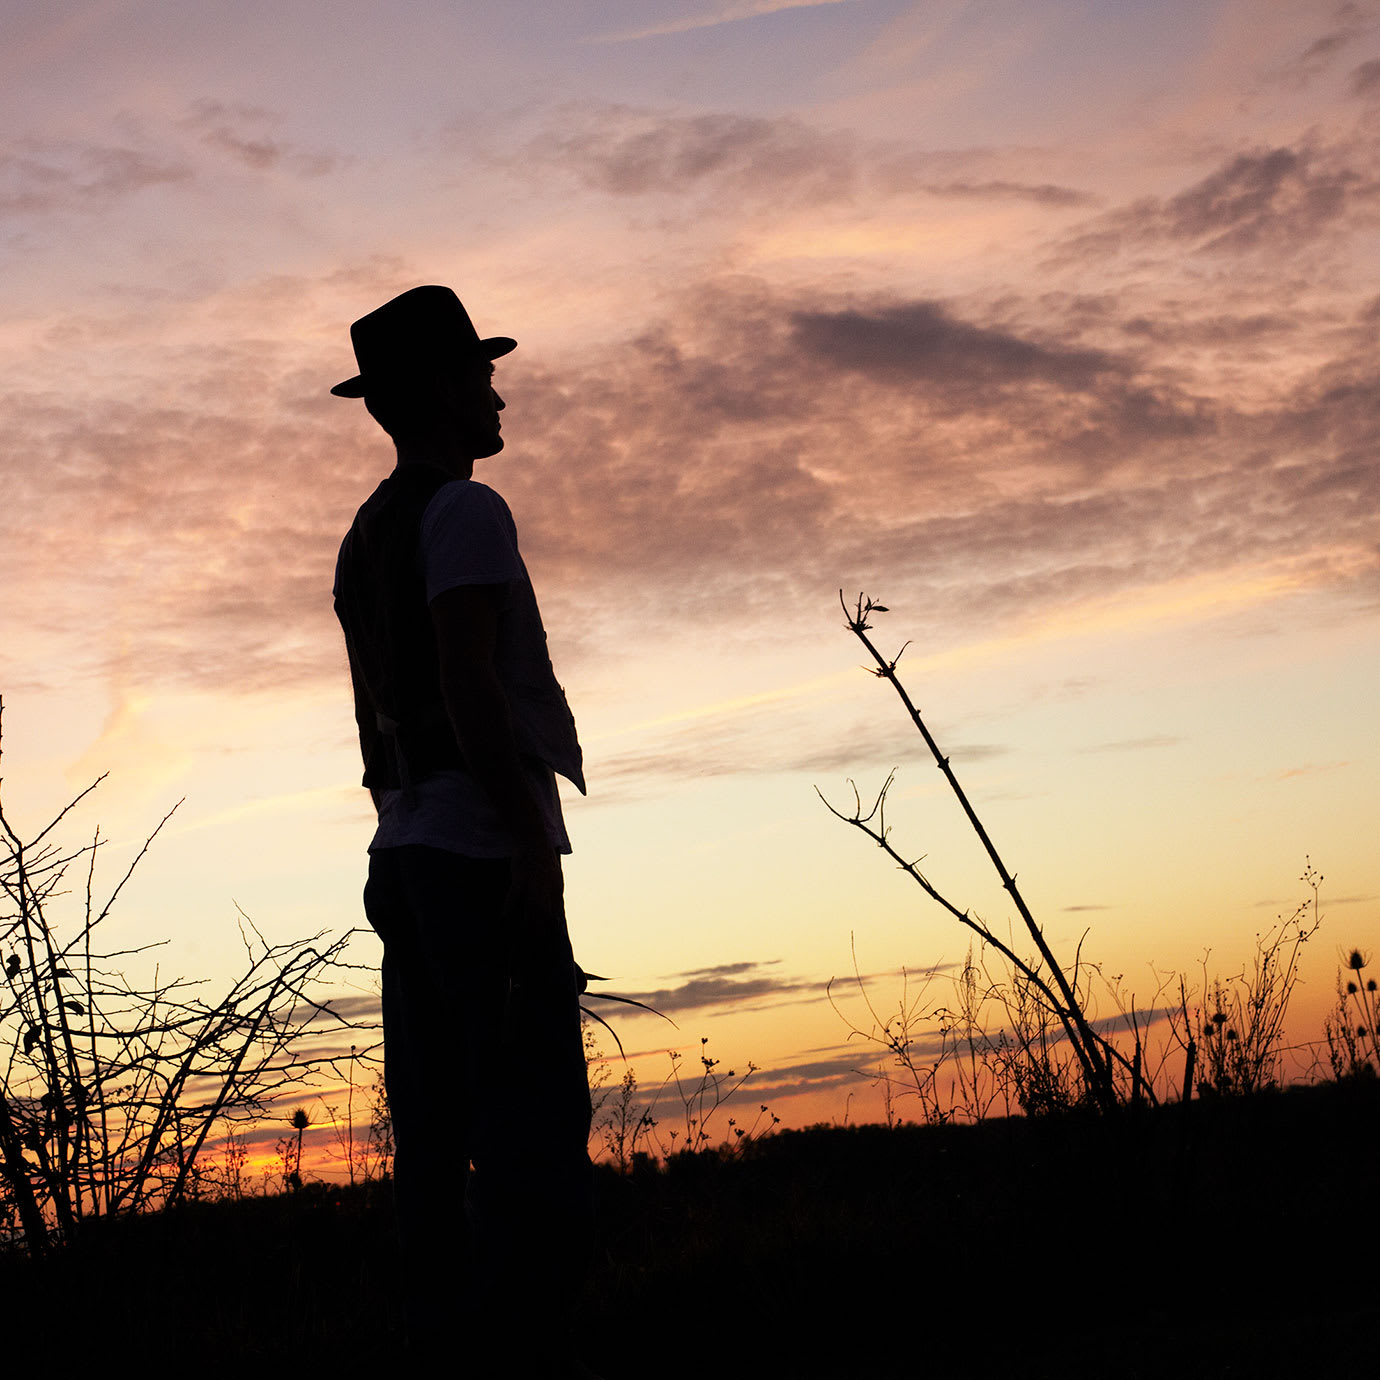 The silhouette of a man standing in a field at sunset.